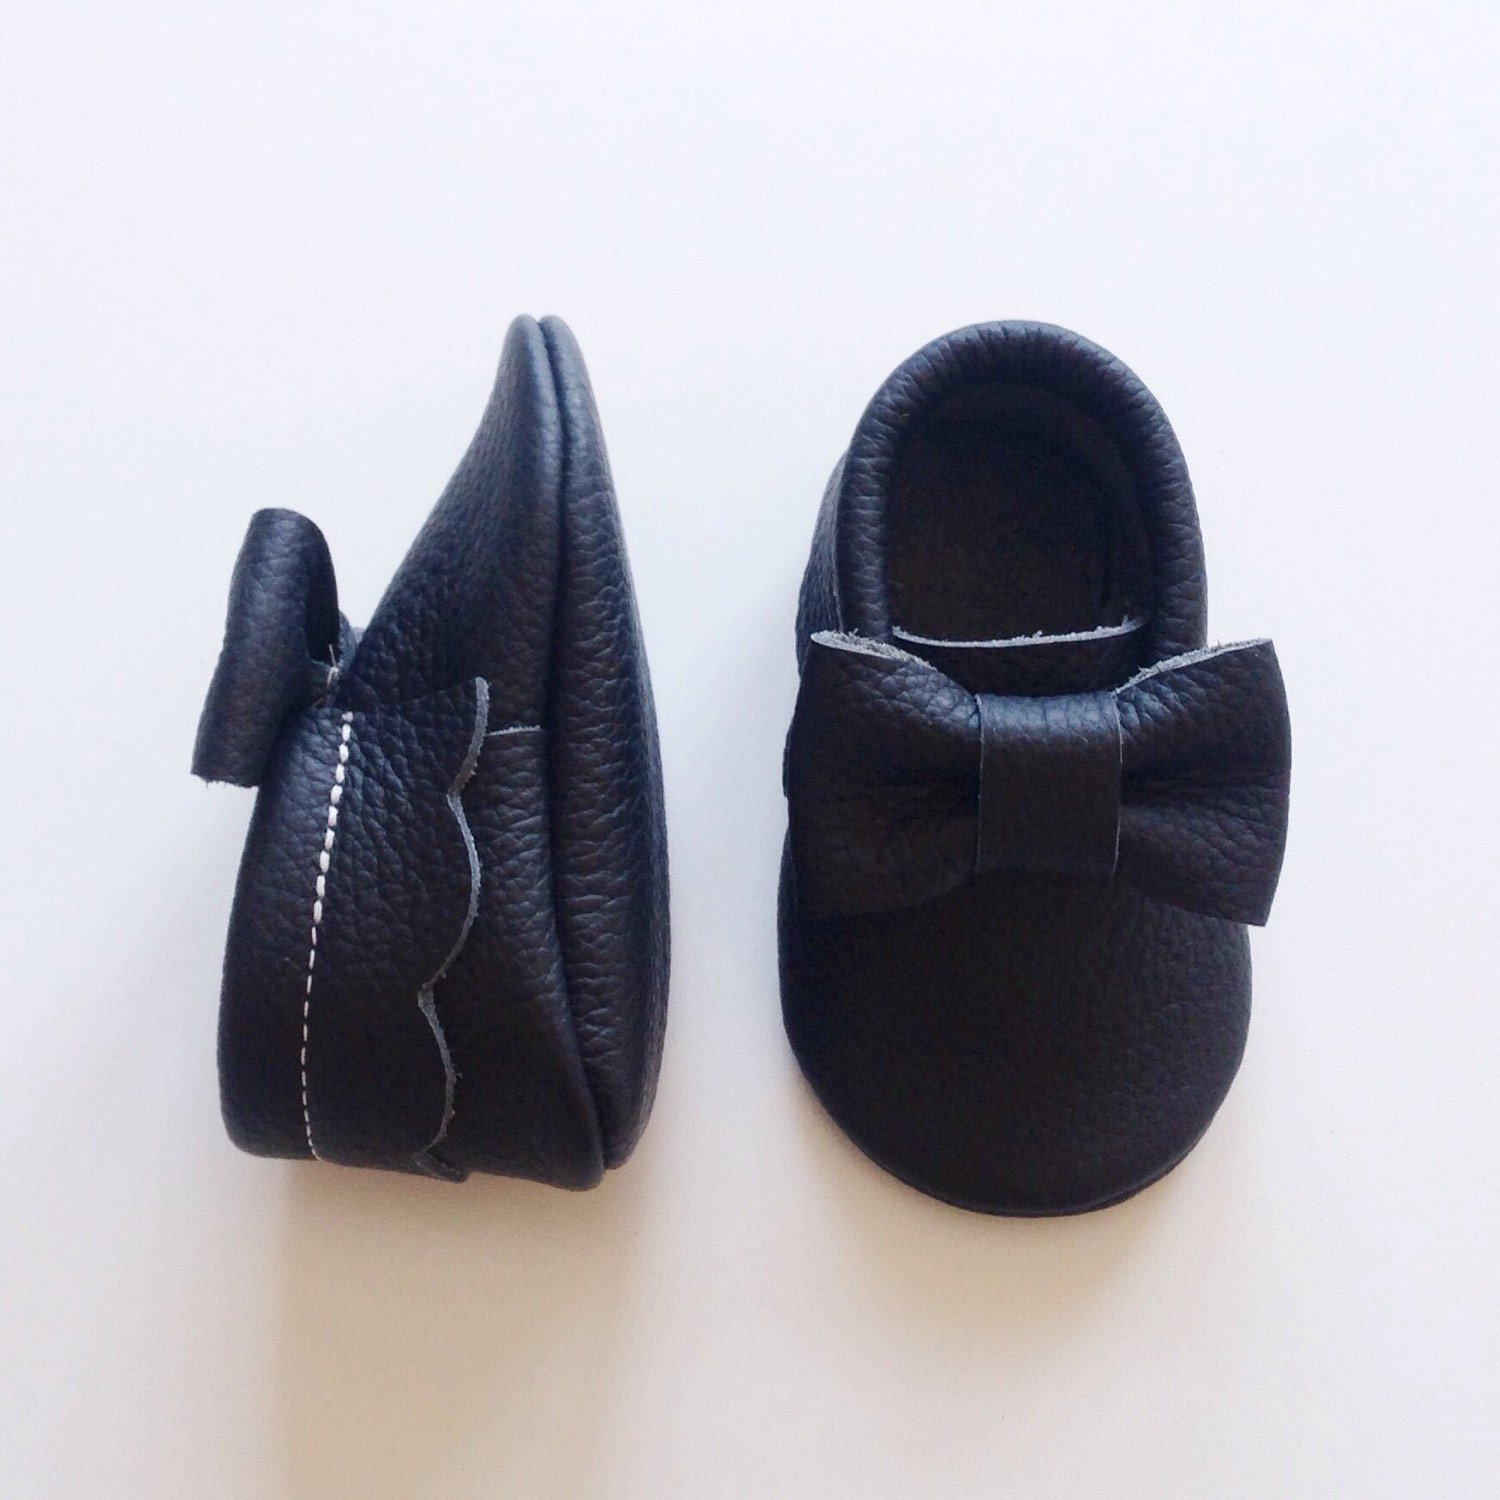 Leather Baby Moccasin Pattern, Wholesale Various High Quality Leather Baby Moccasin Pattern Products from Global Leather Baby Moccasin Pattern Suppliers and Leather Baby Moccasin Pattern Factory,Importer,Exporter at free-cabinetfile-downloaded.ga